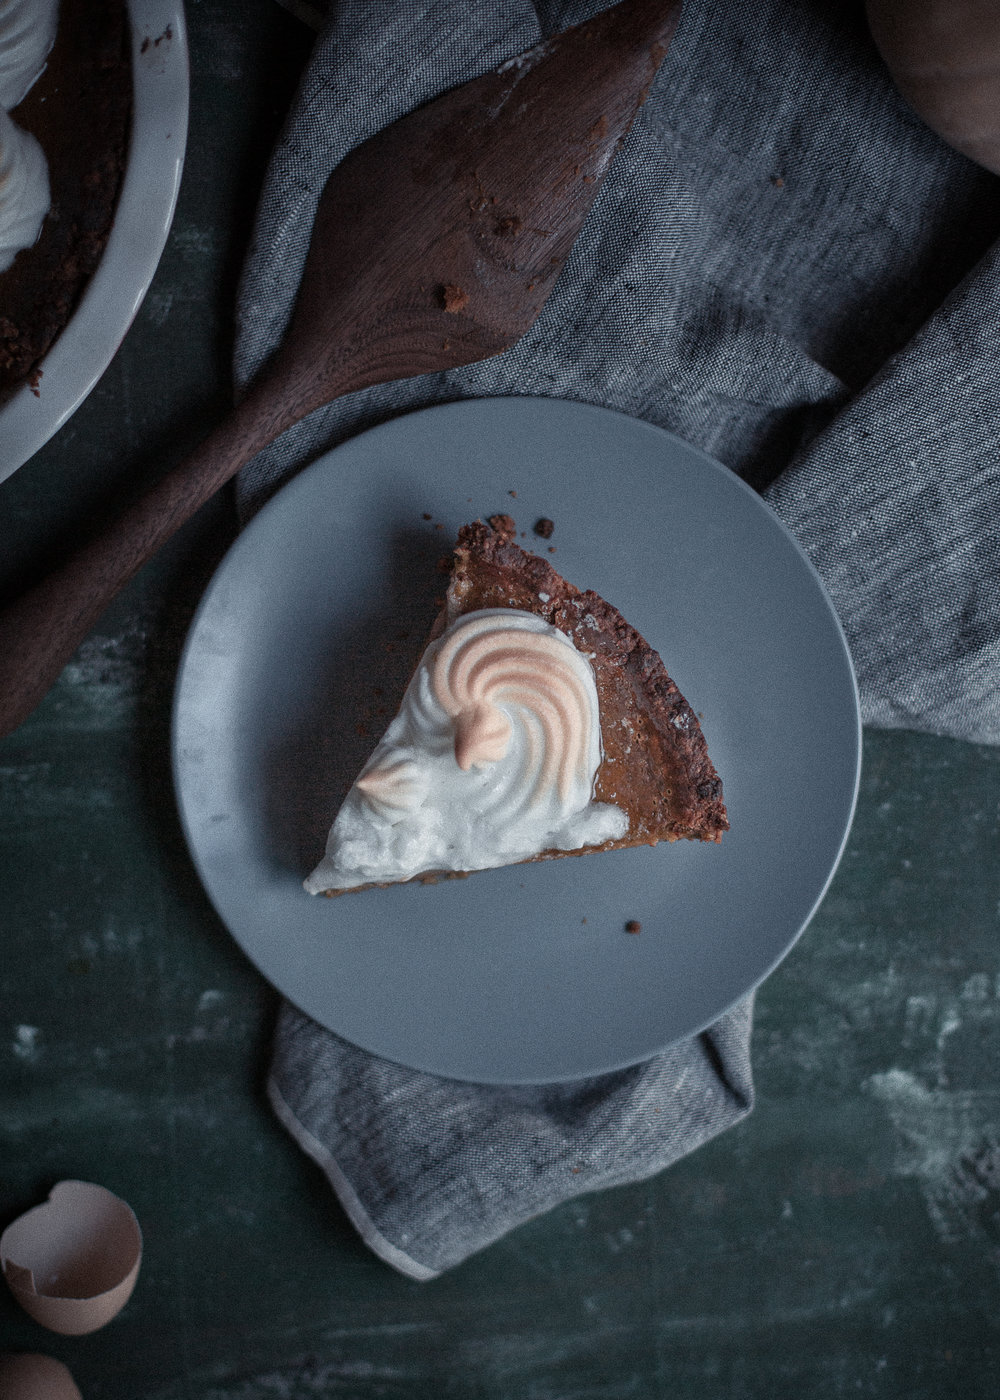 Best recipe with Biscoff cookies, Urth Caffe style pumpkin pie at home, featuring Polder's Old World Market Dreamware | from scratch, mostly